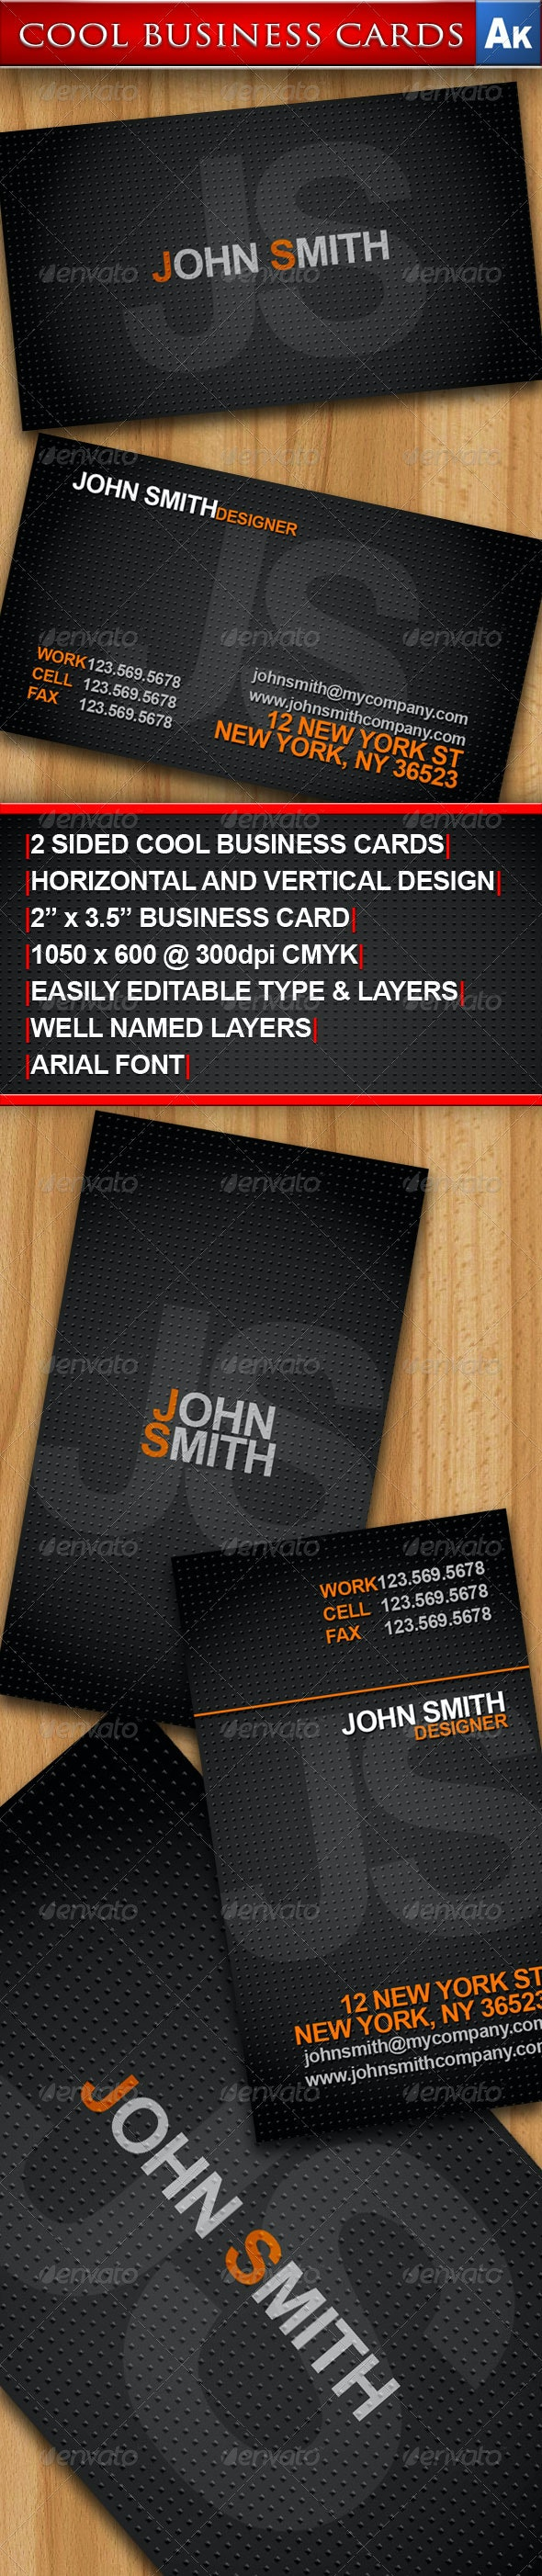 Cool Business Cards - Horizontal and Vertical - Creative Business Cards